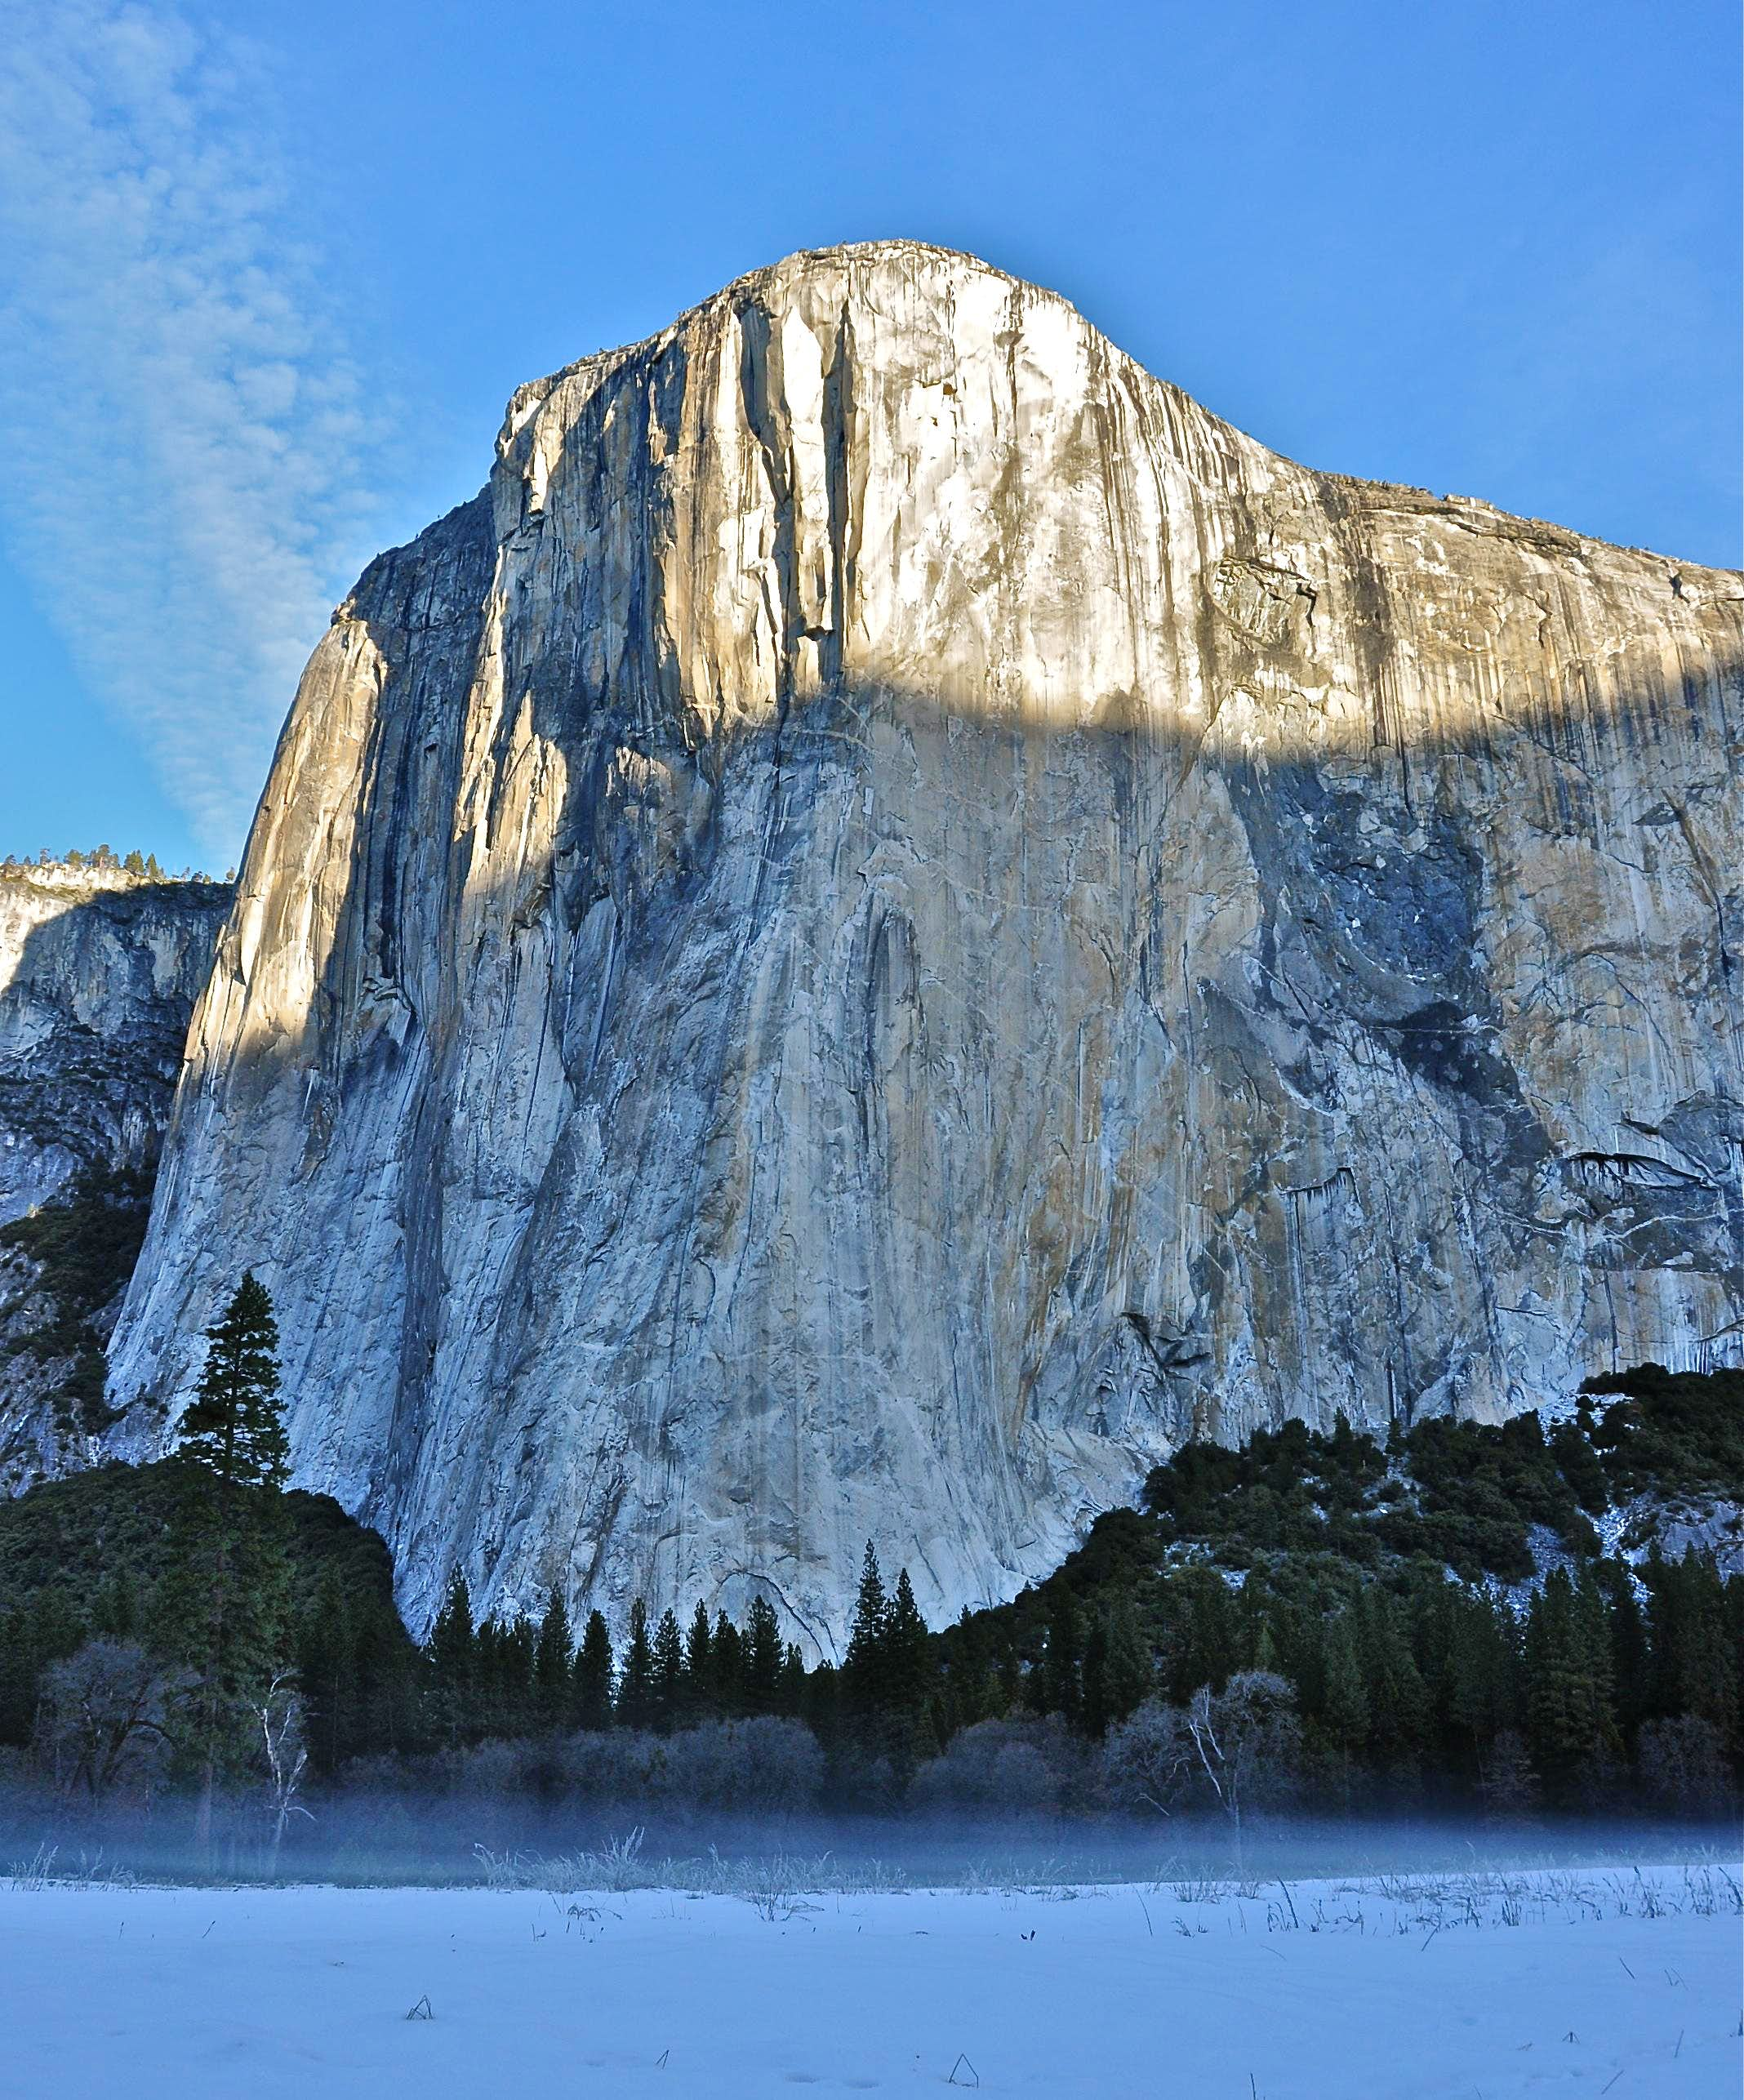 El Cap, The Big Stone